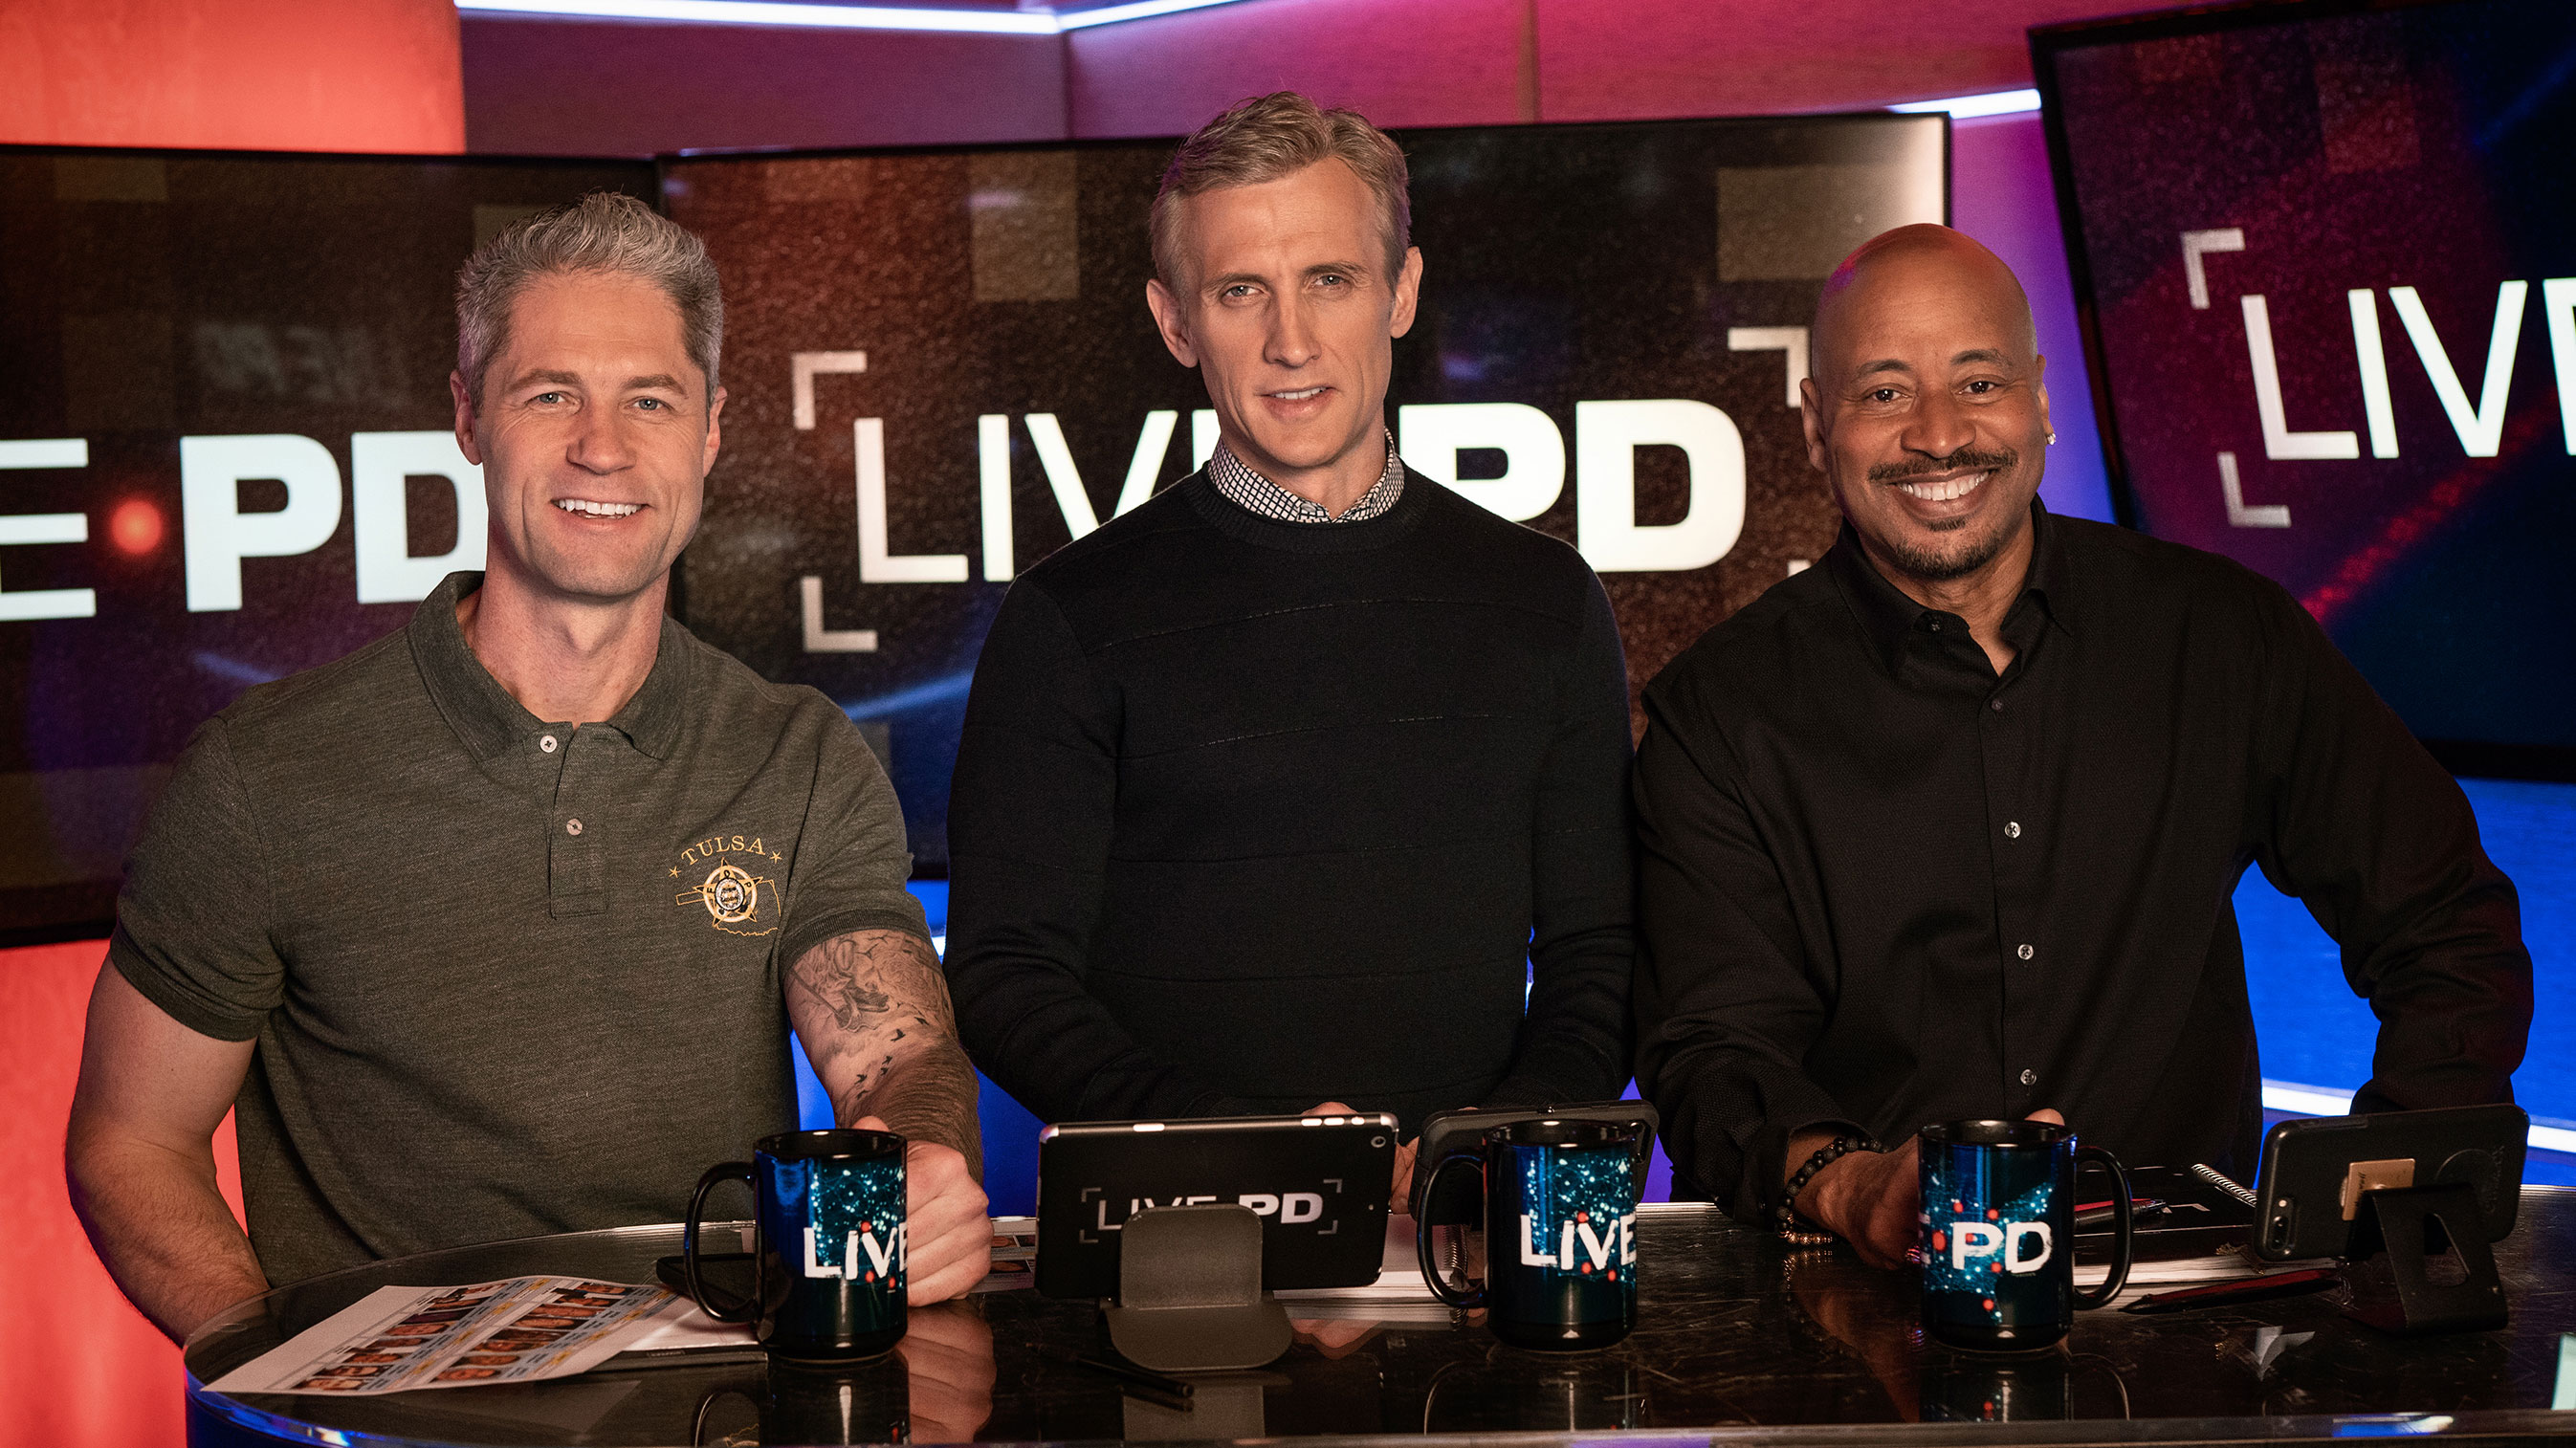 Dan Abrams, Tom Morris Jr. and Sgt. Sean 'Sticks' Larkin Answer Questions from the Live PD Nation